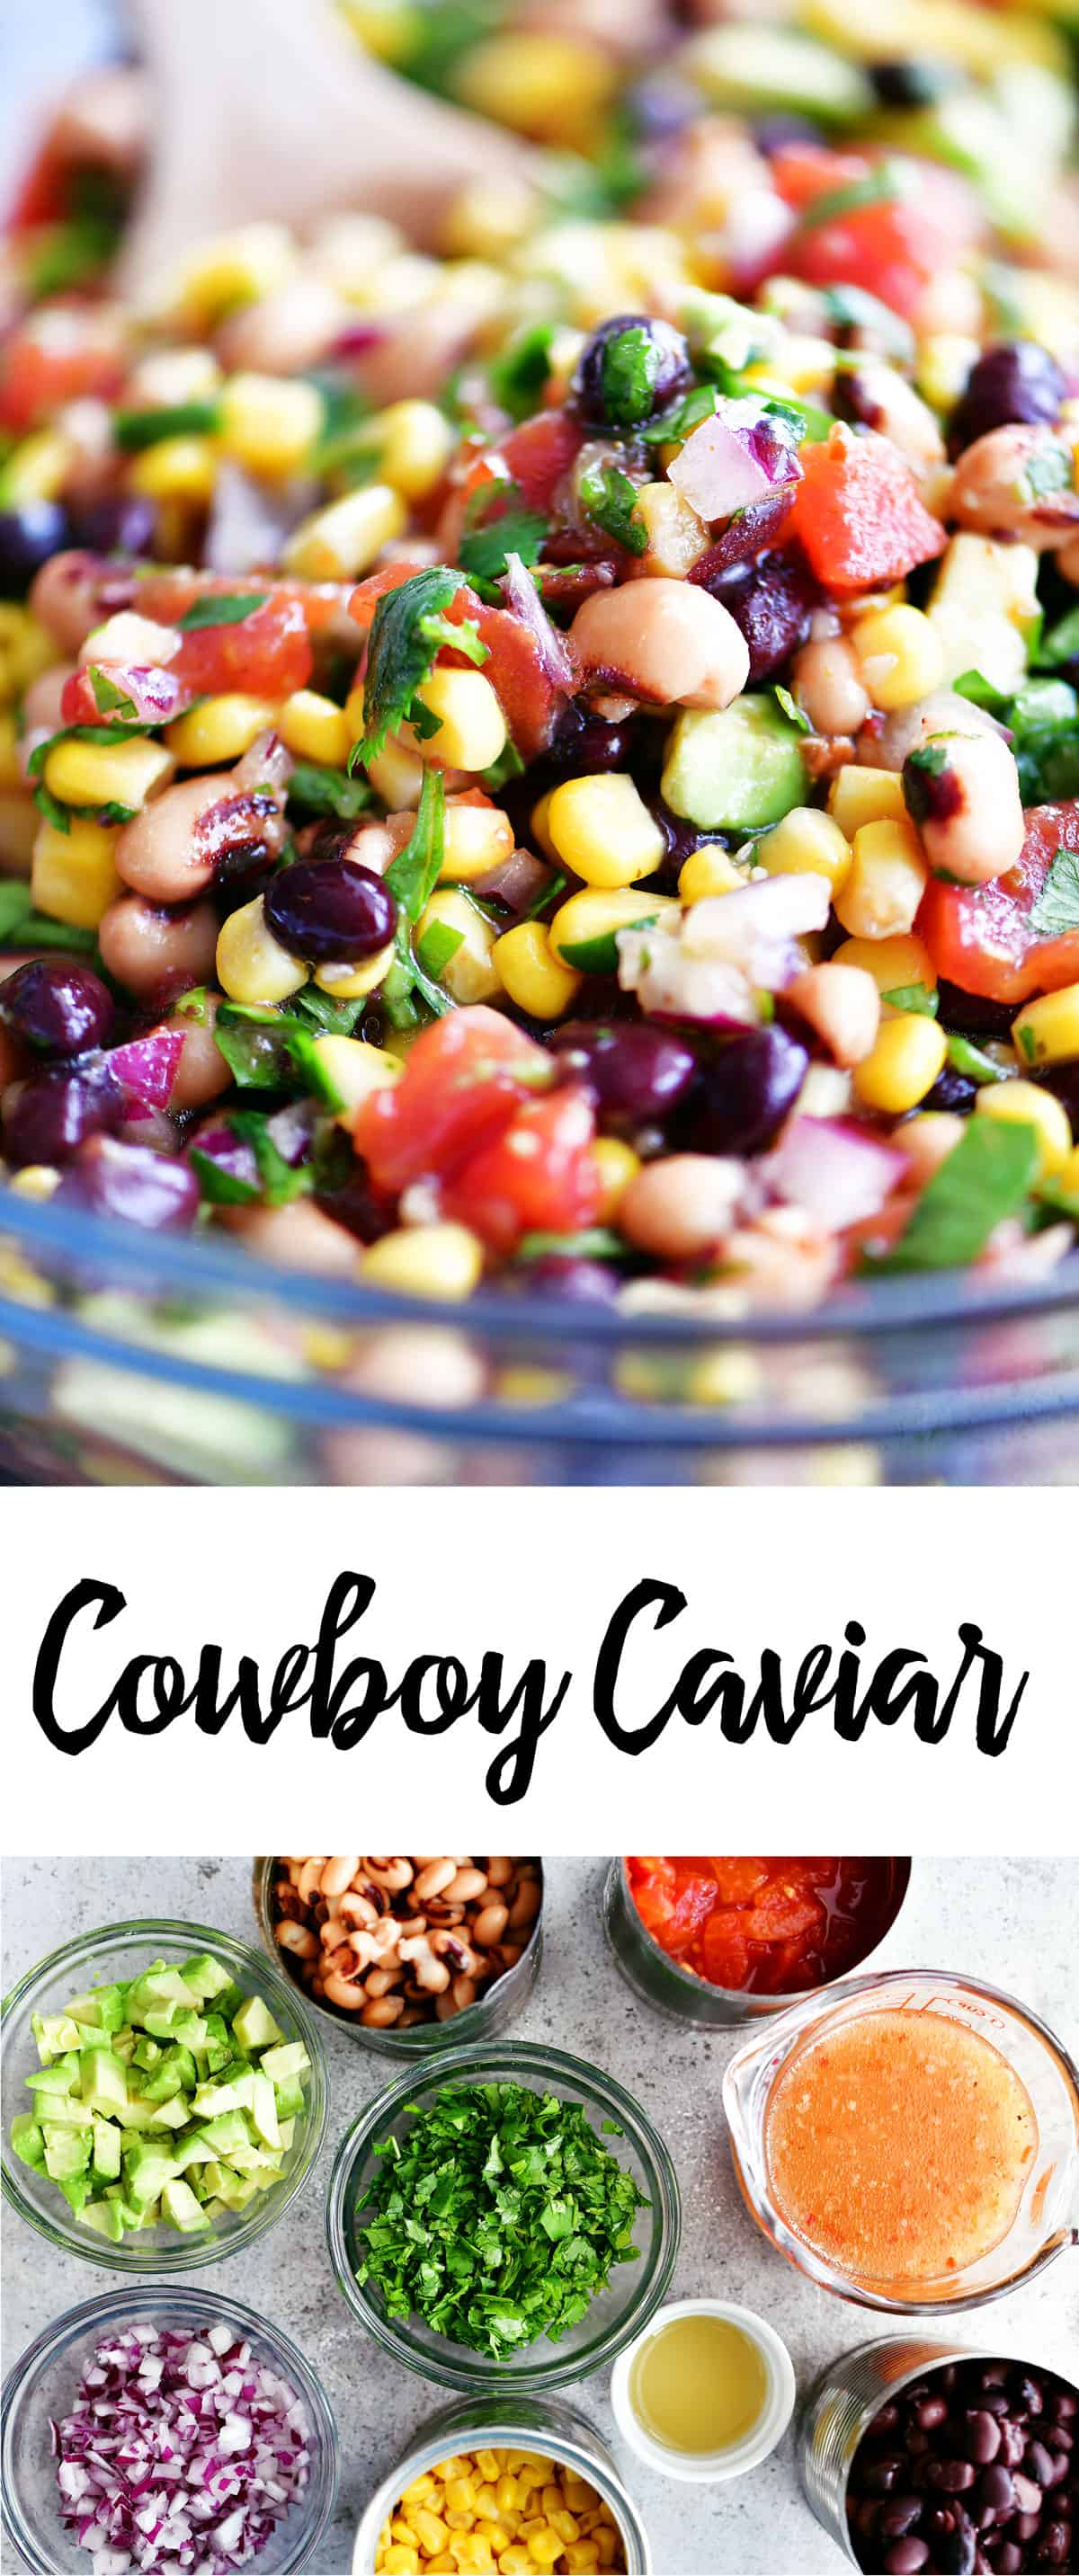 cowboy caviar collage